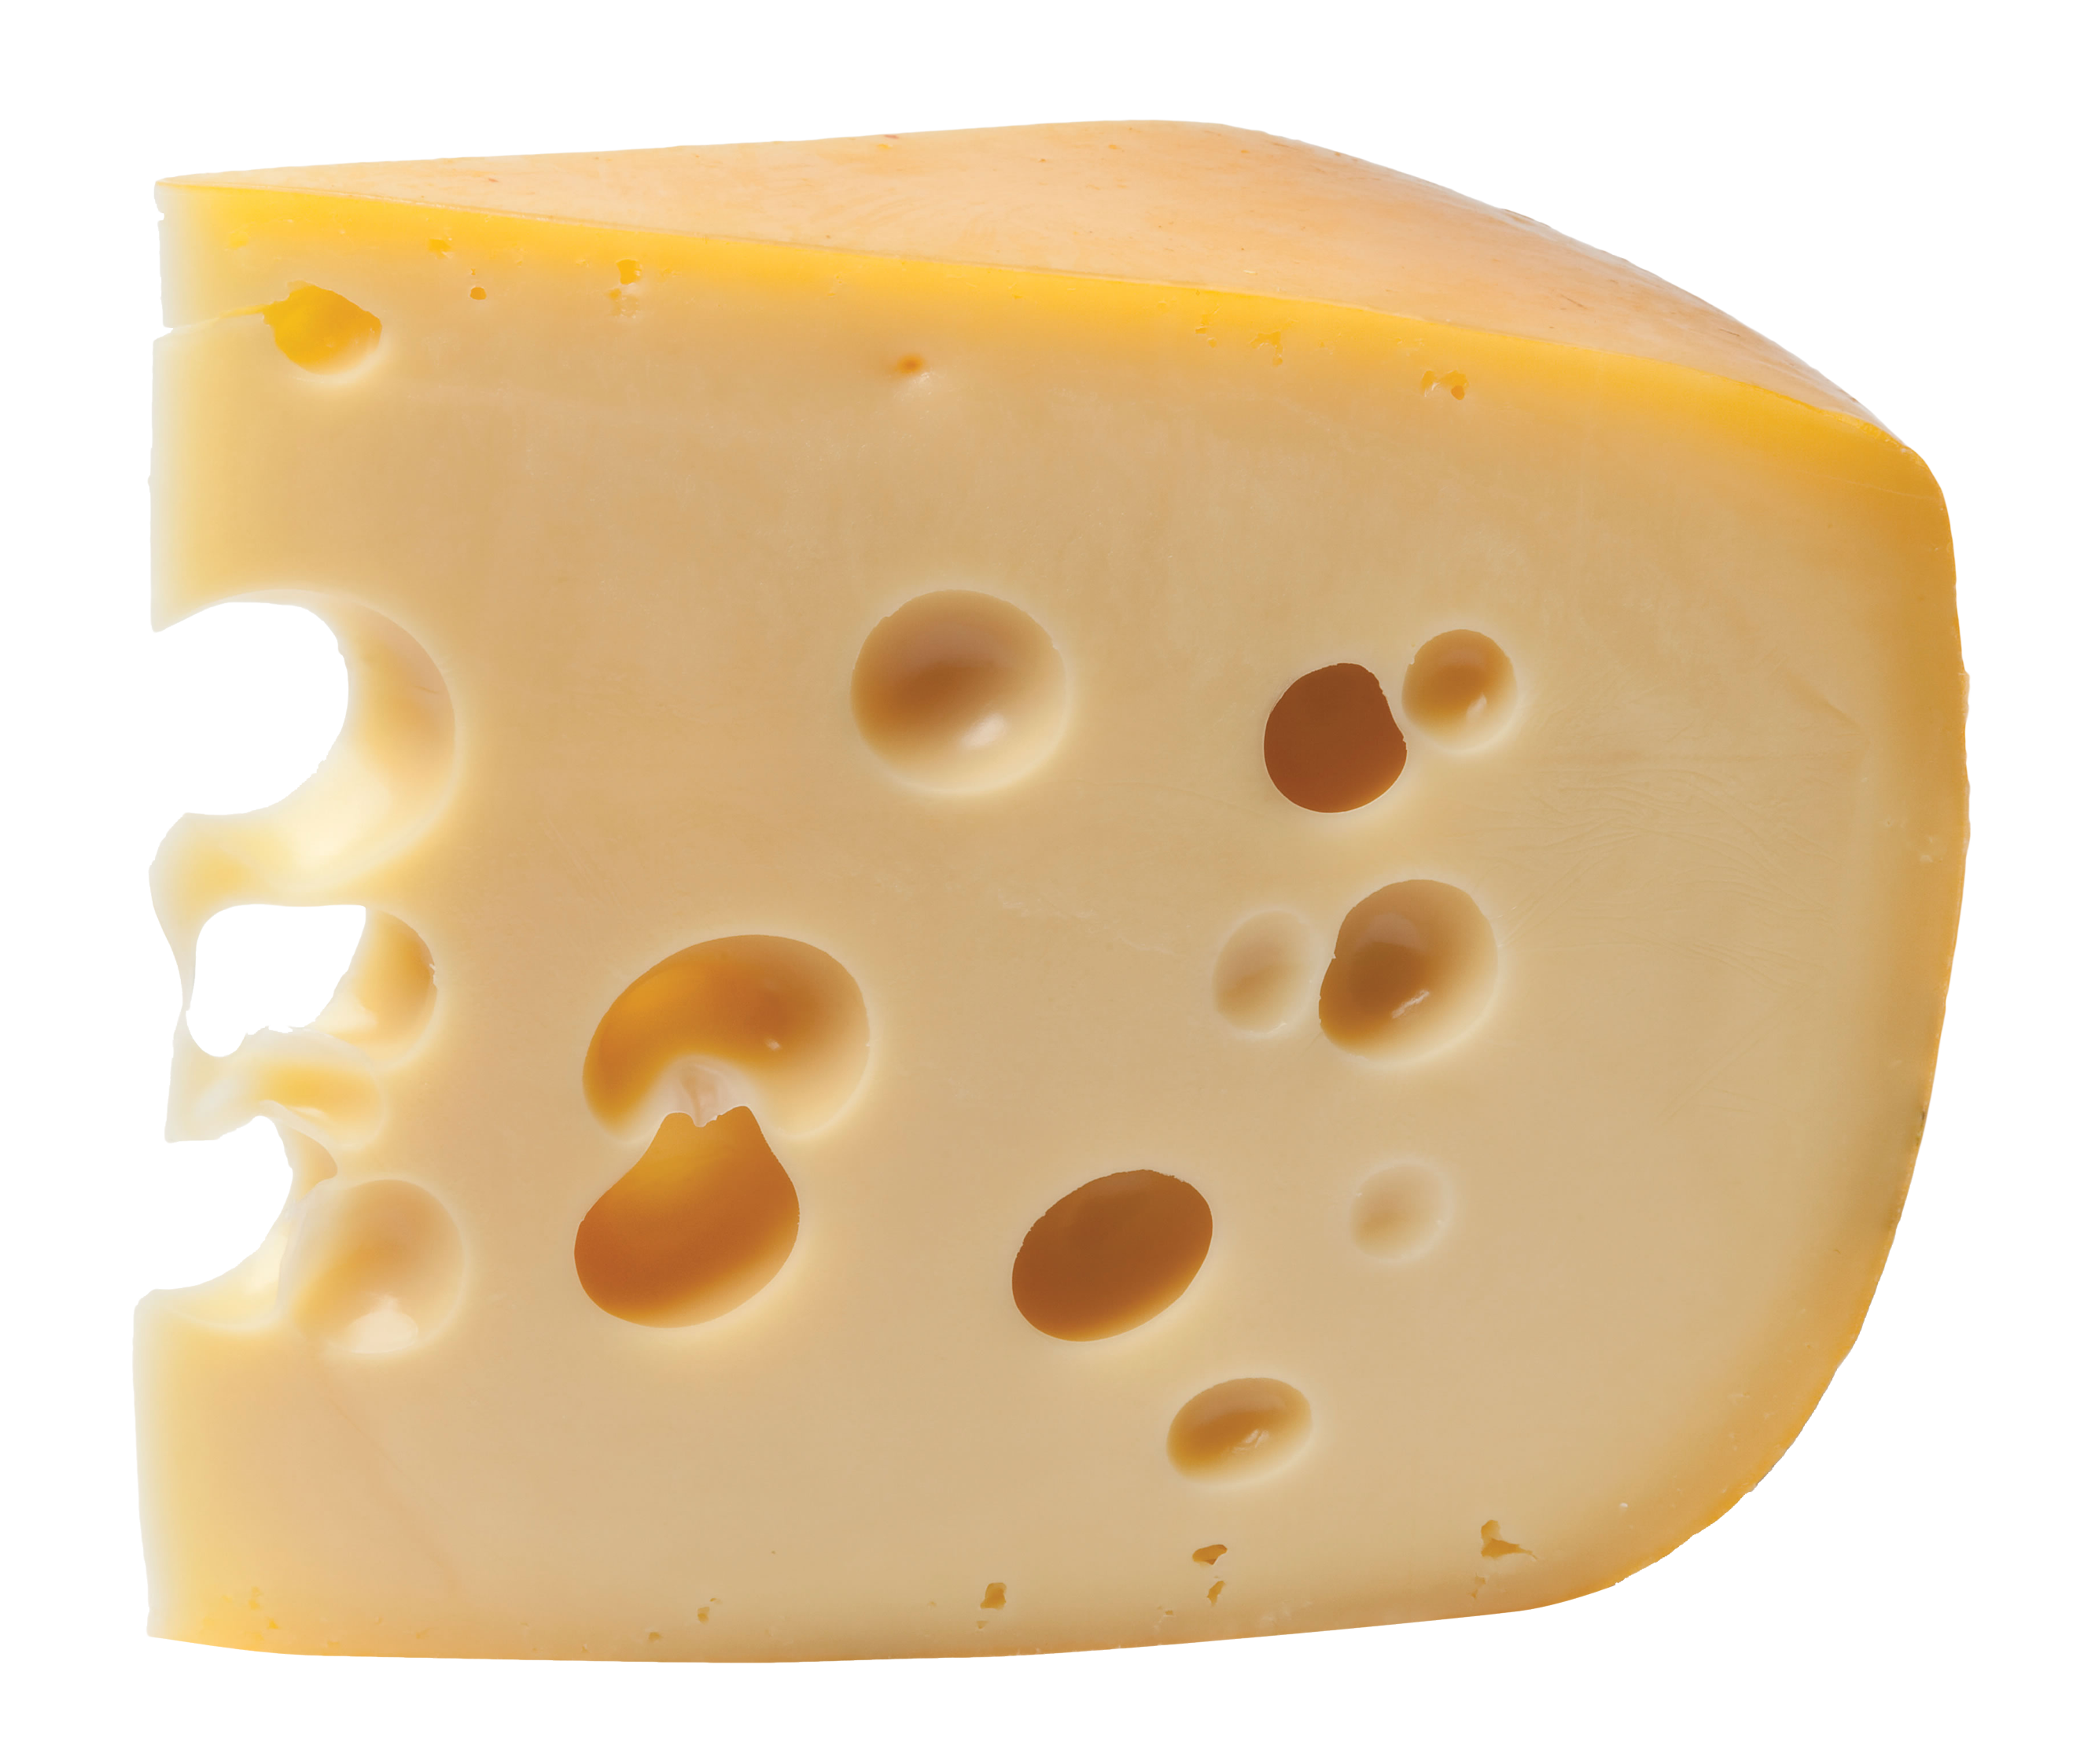 Hdpng - Cheese, Transparent background PNG HD thumbnail